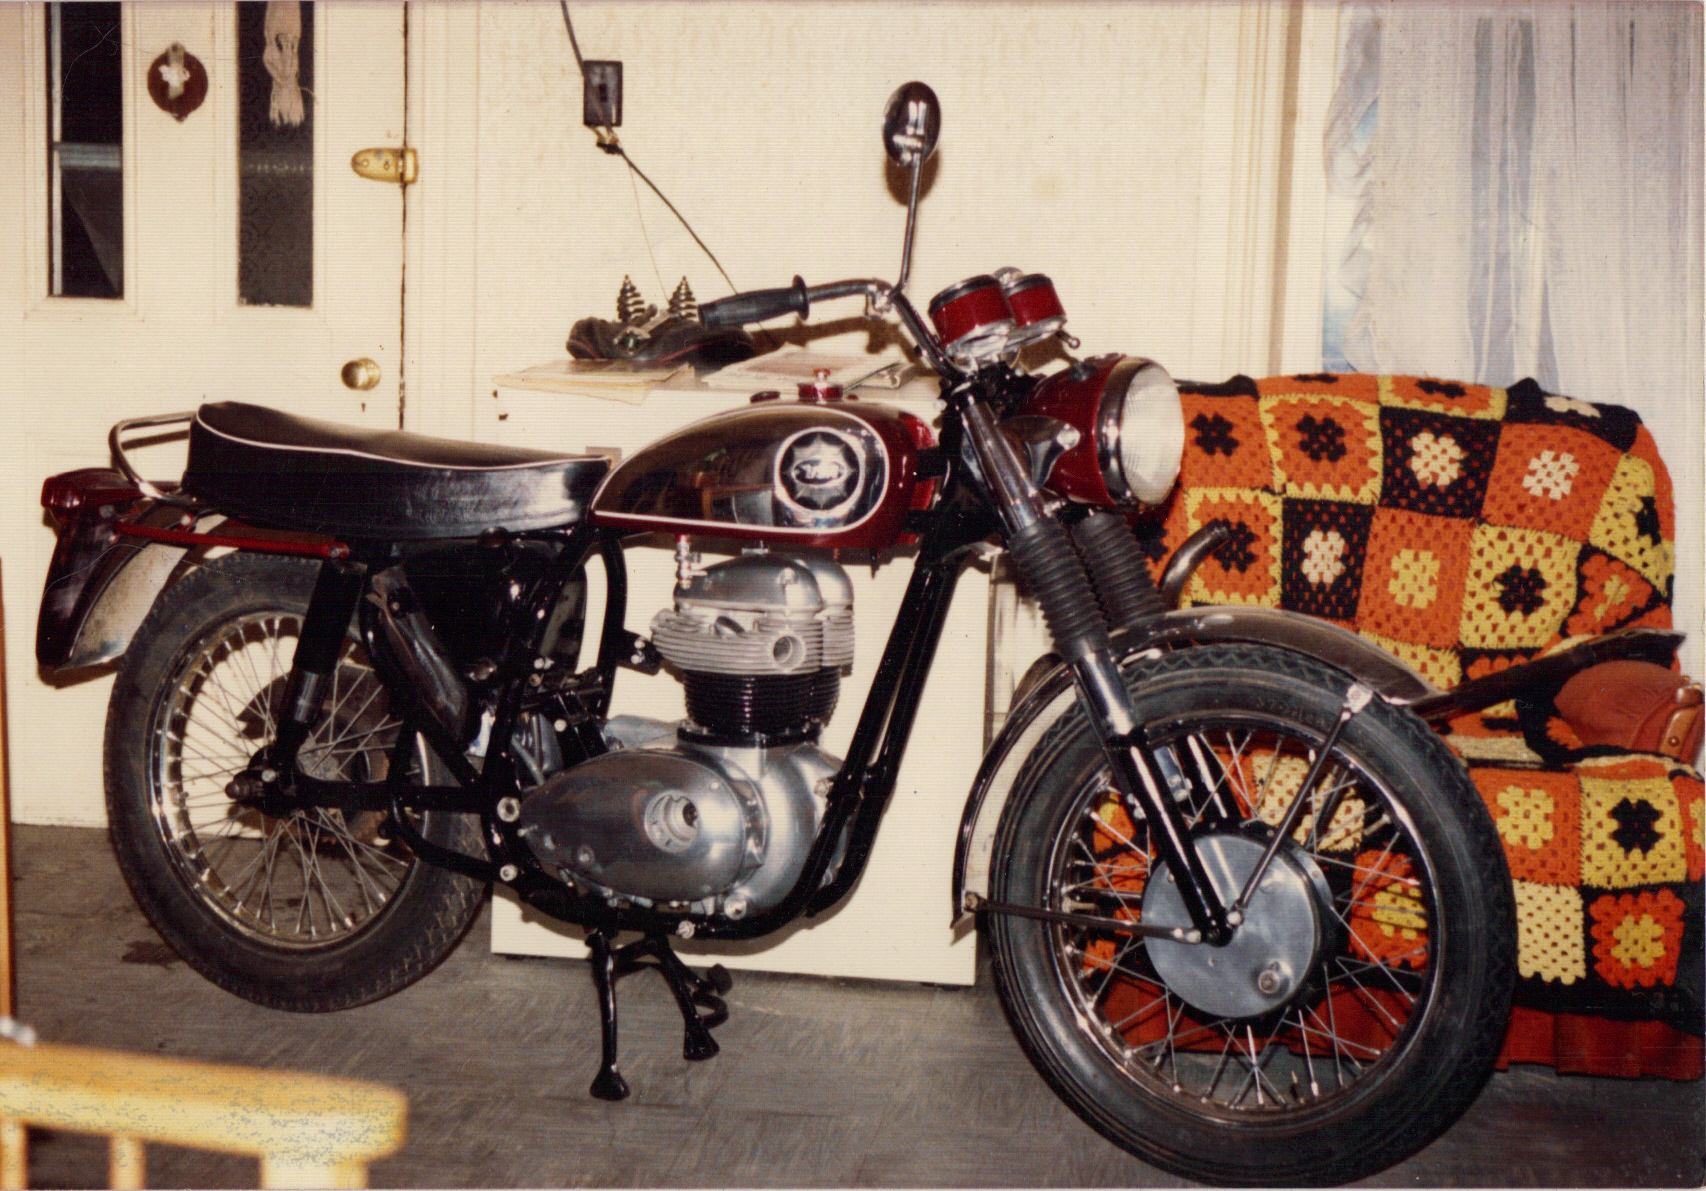 1964 650 BSA A65D motorcycle